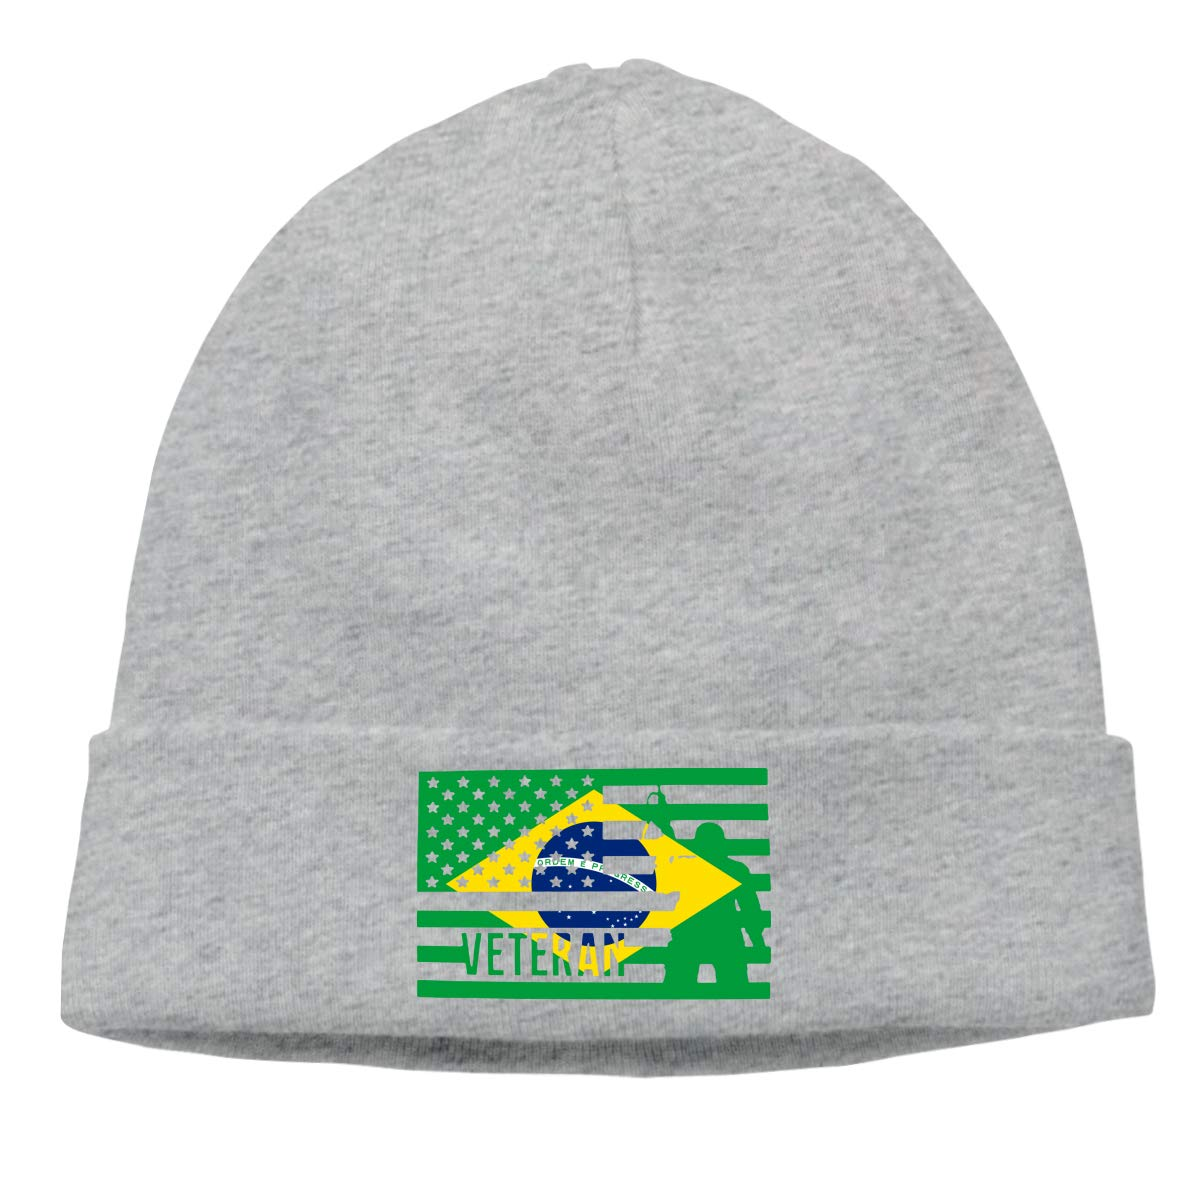 Stretchy /& Soft Winter Cap Veteran American Brazil Flag Unisex Solid Color Beanie Hat Thin